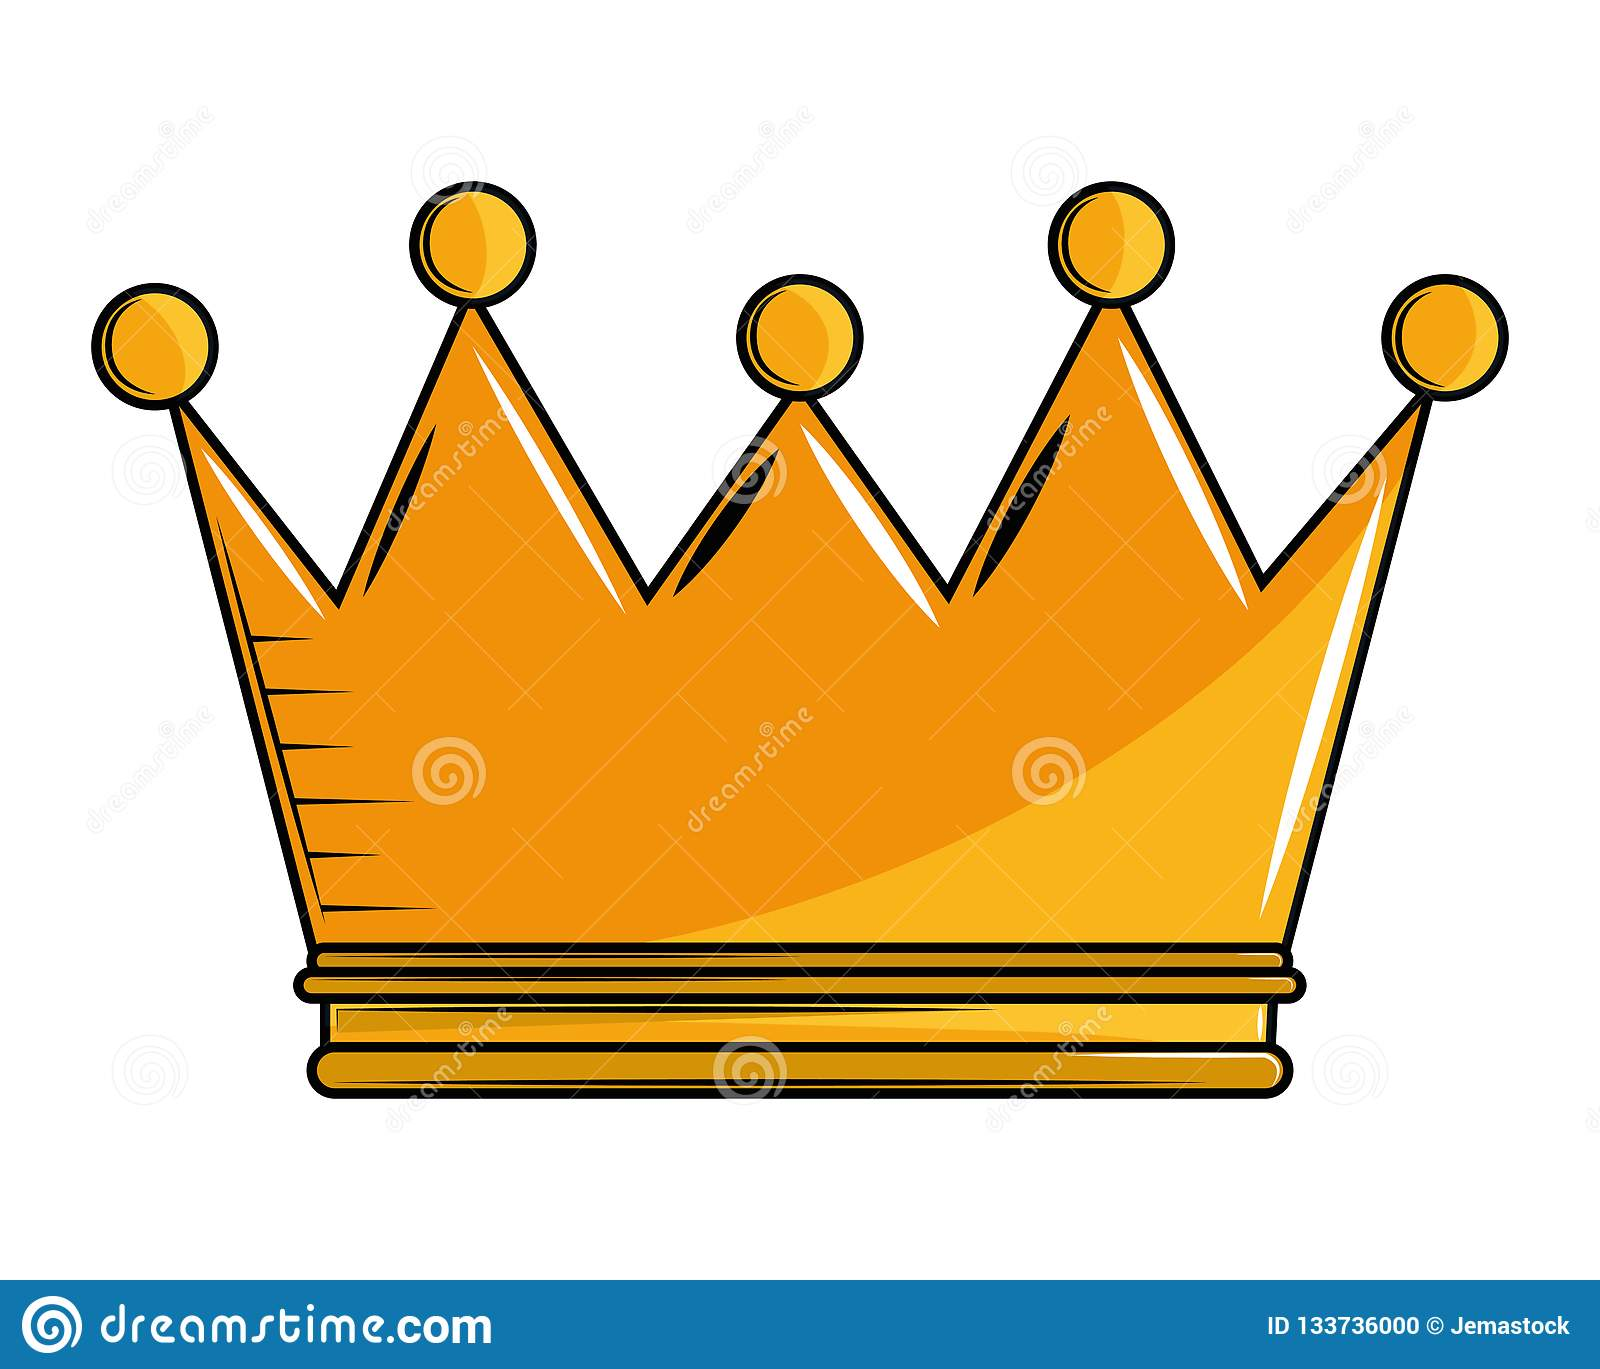 King Crown Cartoon Stock Vector Illustration Of Object 133736000 Lovepik provides 4700+ king crown photos in hd resolution that updates everyday, you can free download for both personal and commerical use. https www dreamstime com king crown cartoon vector illustration graphic design king crown cartoon image133736000